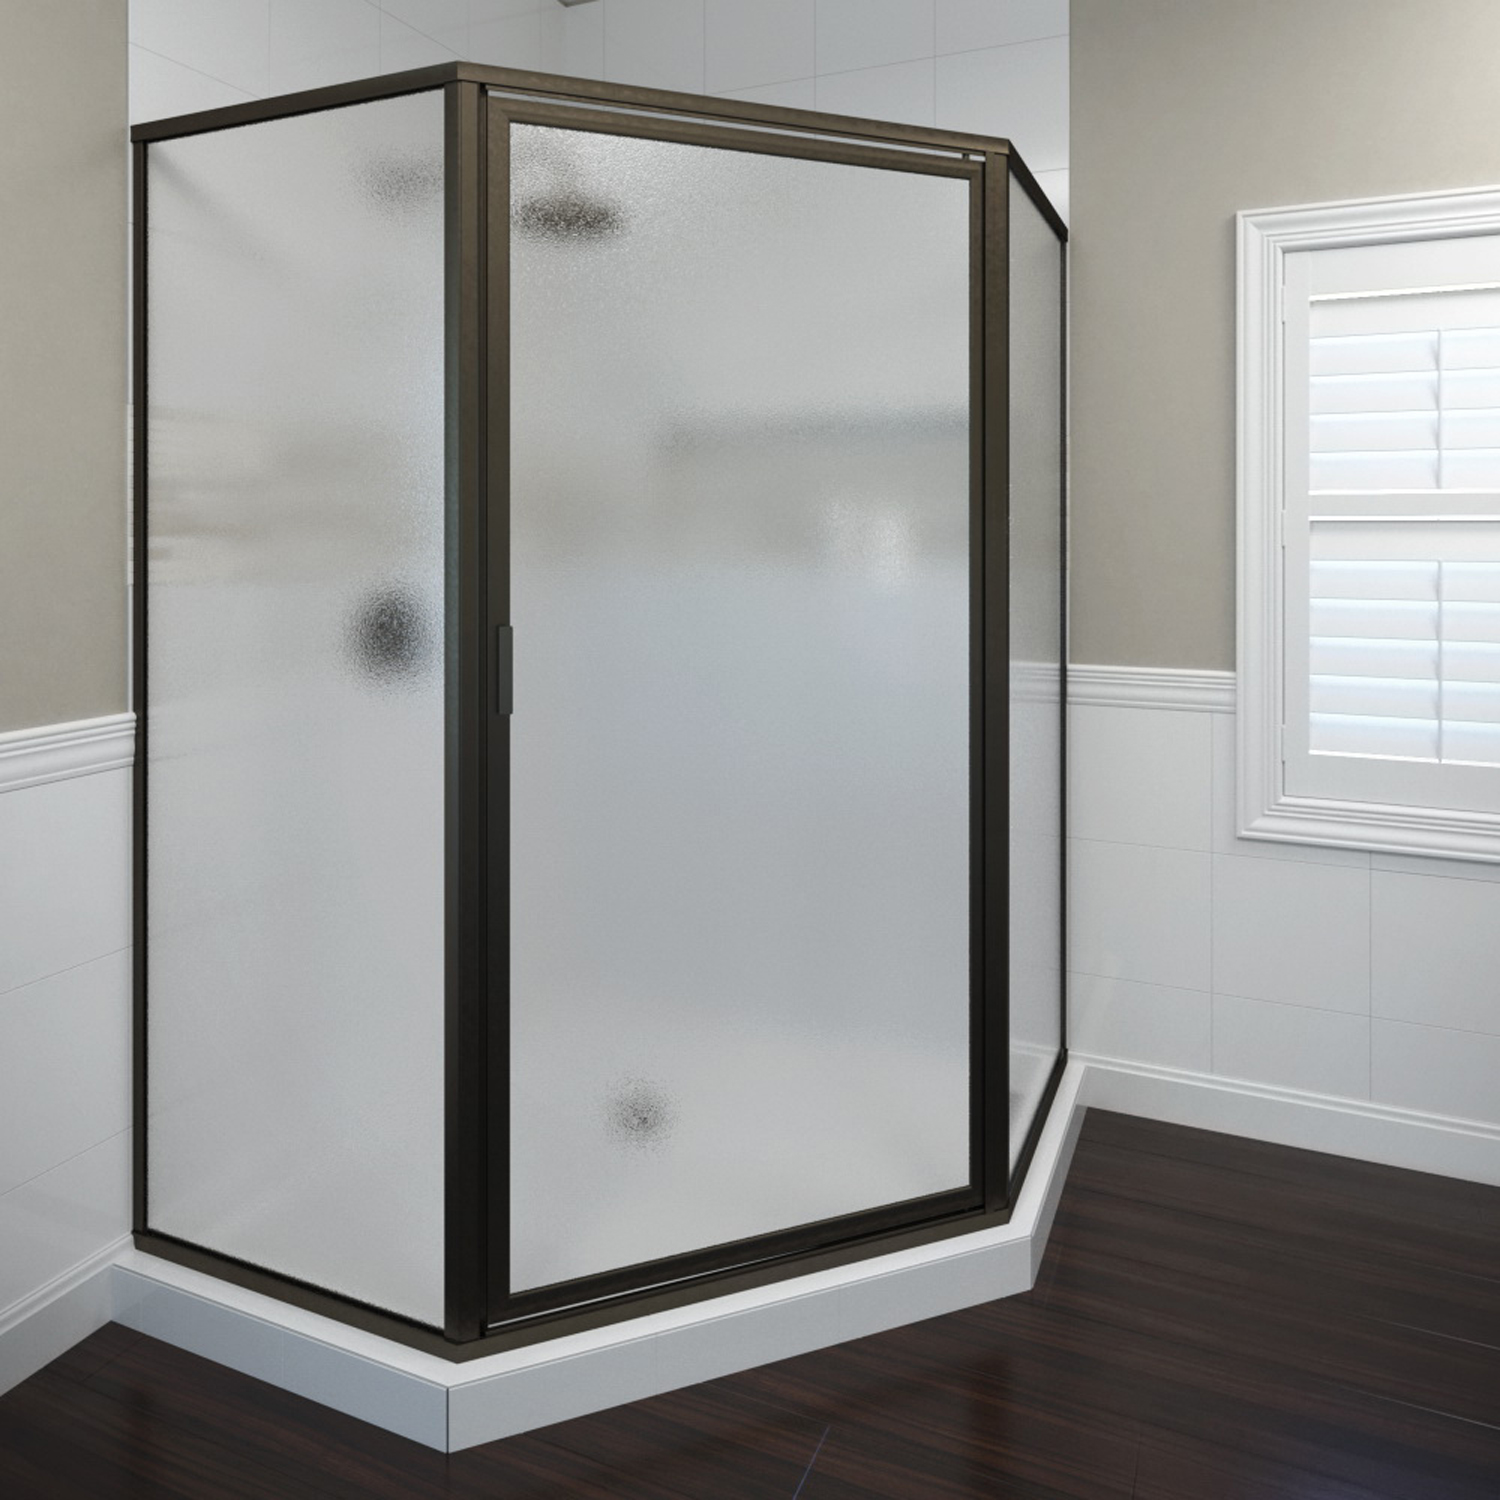 Basco 160jor 49 88 Deluxe Neo Angle Shower Enclosure With